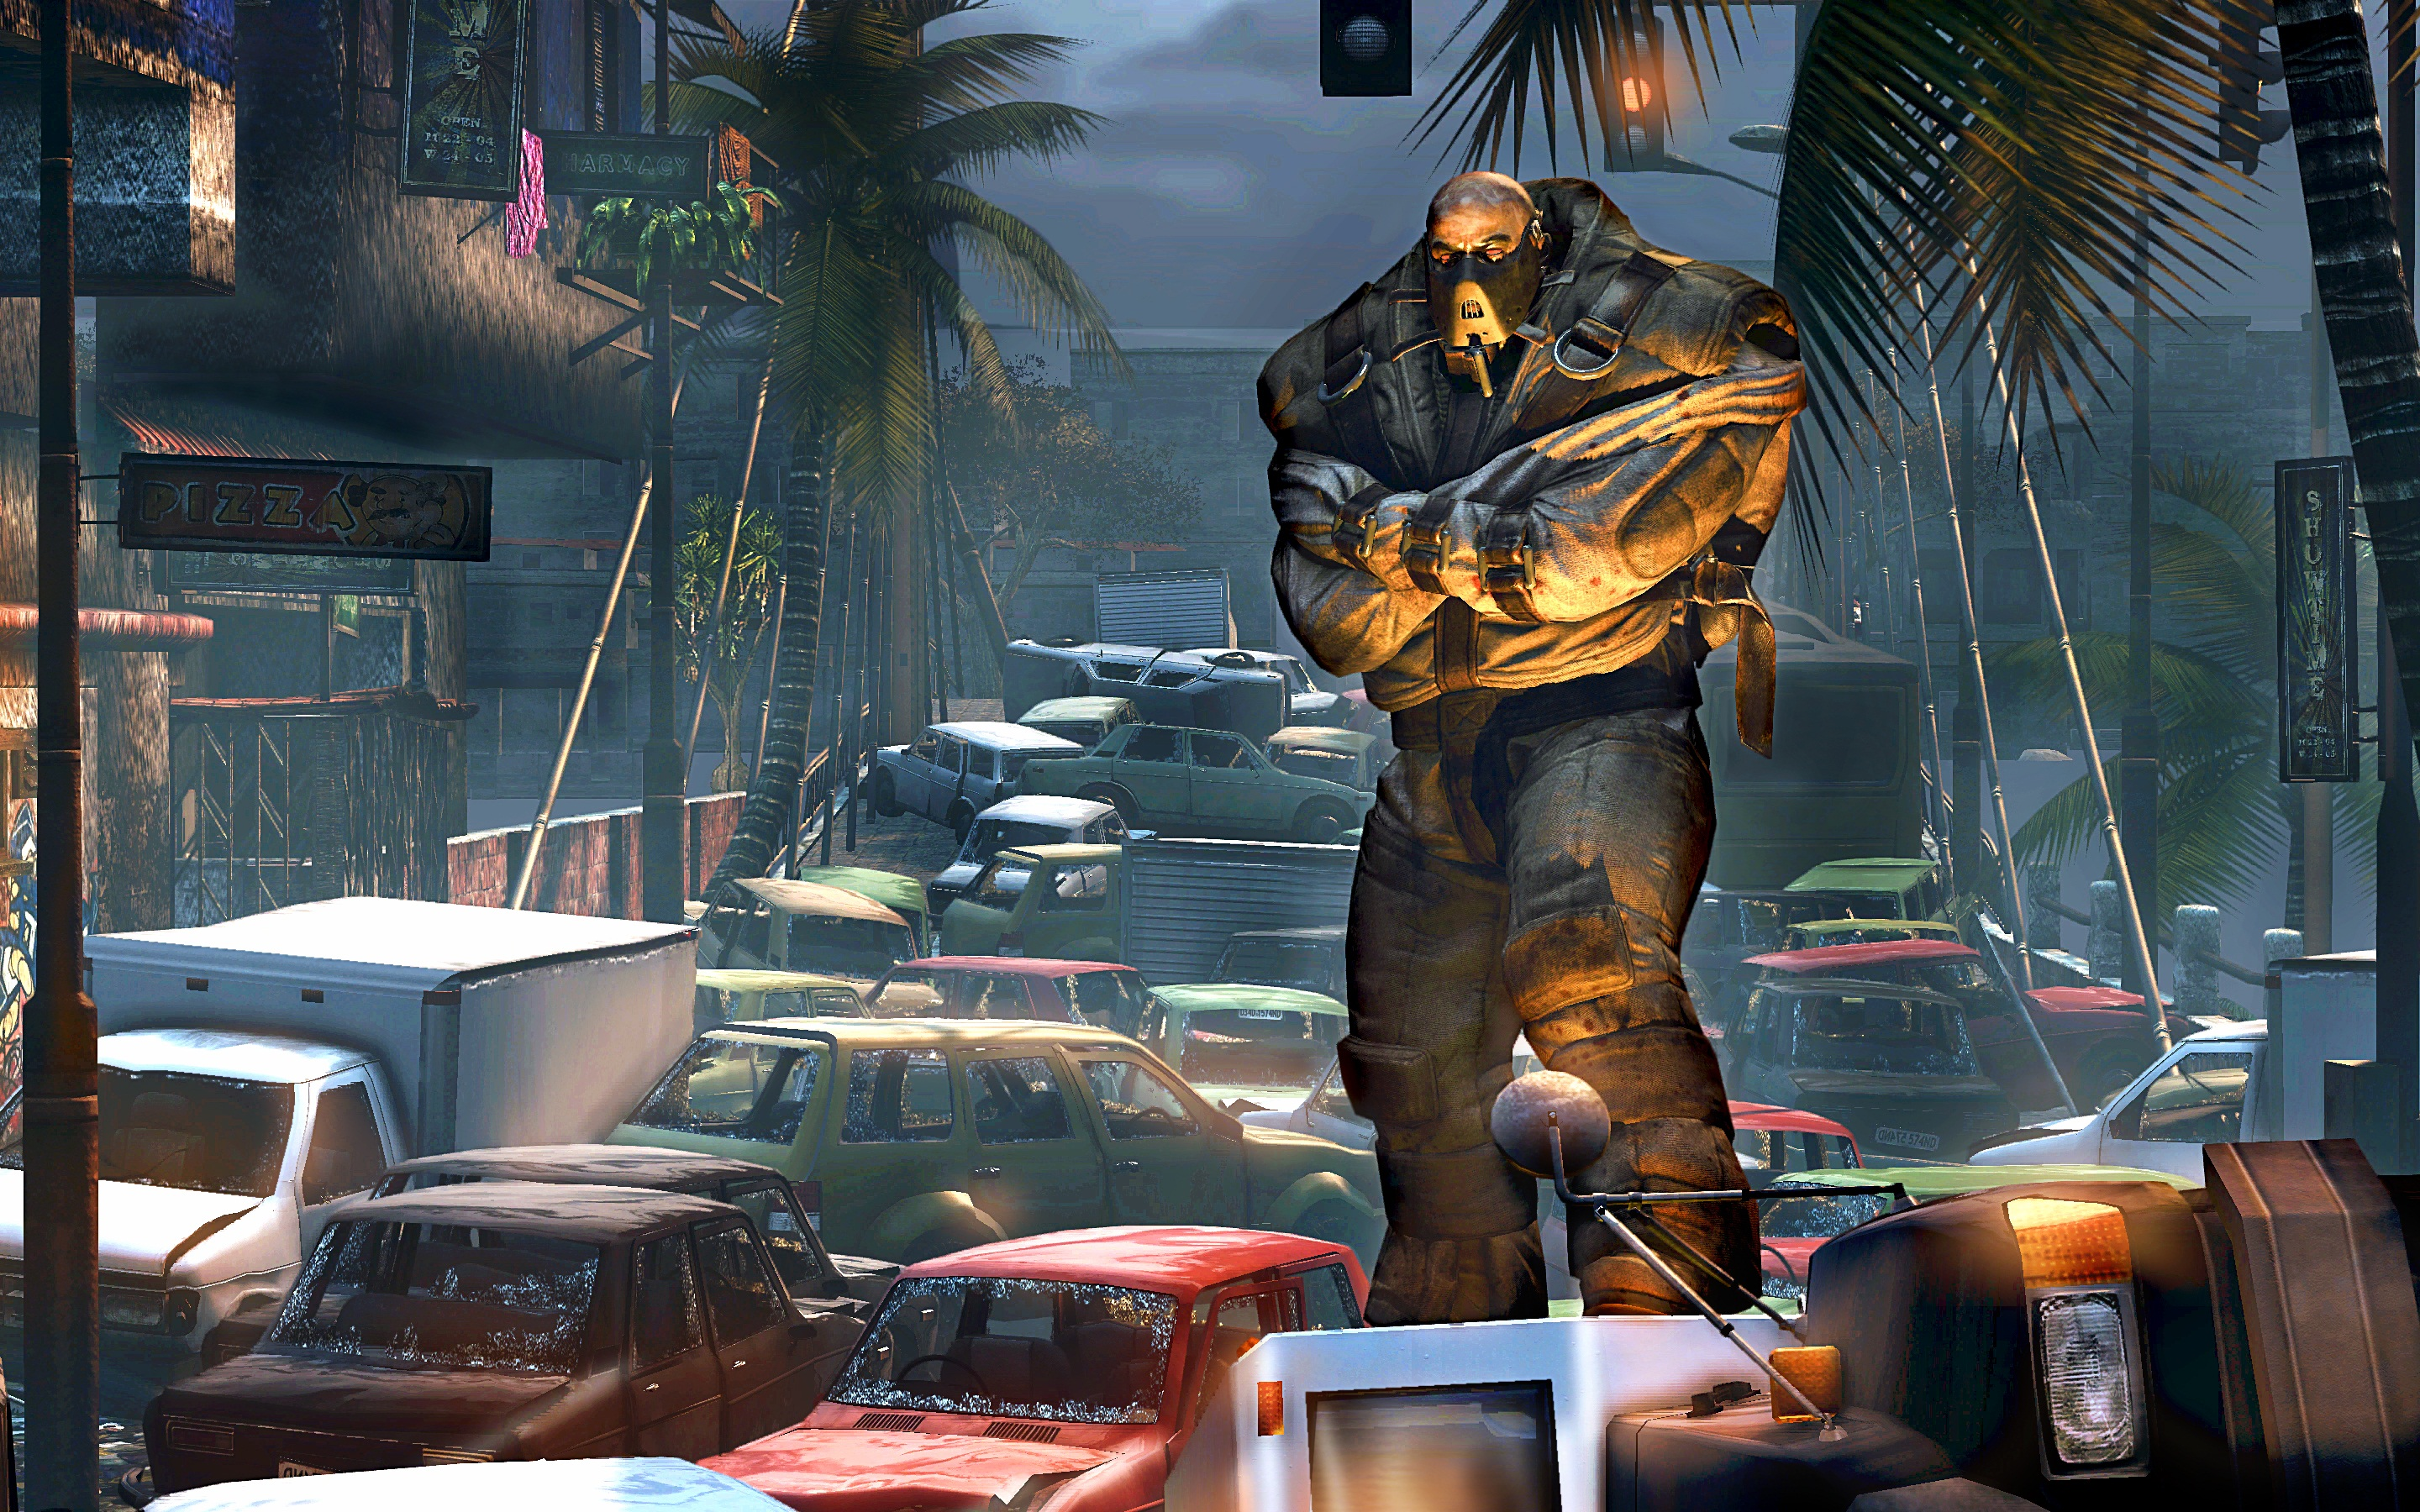 These new Dead Island screens bring brute force